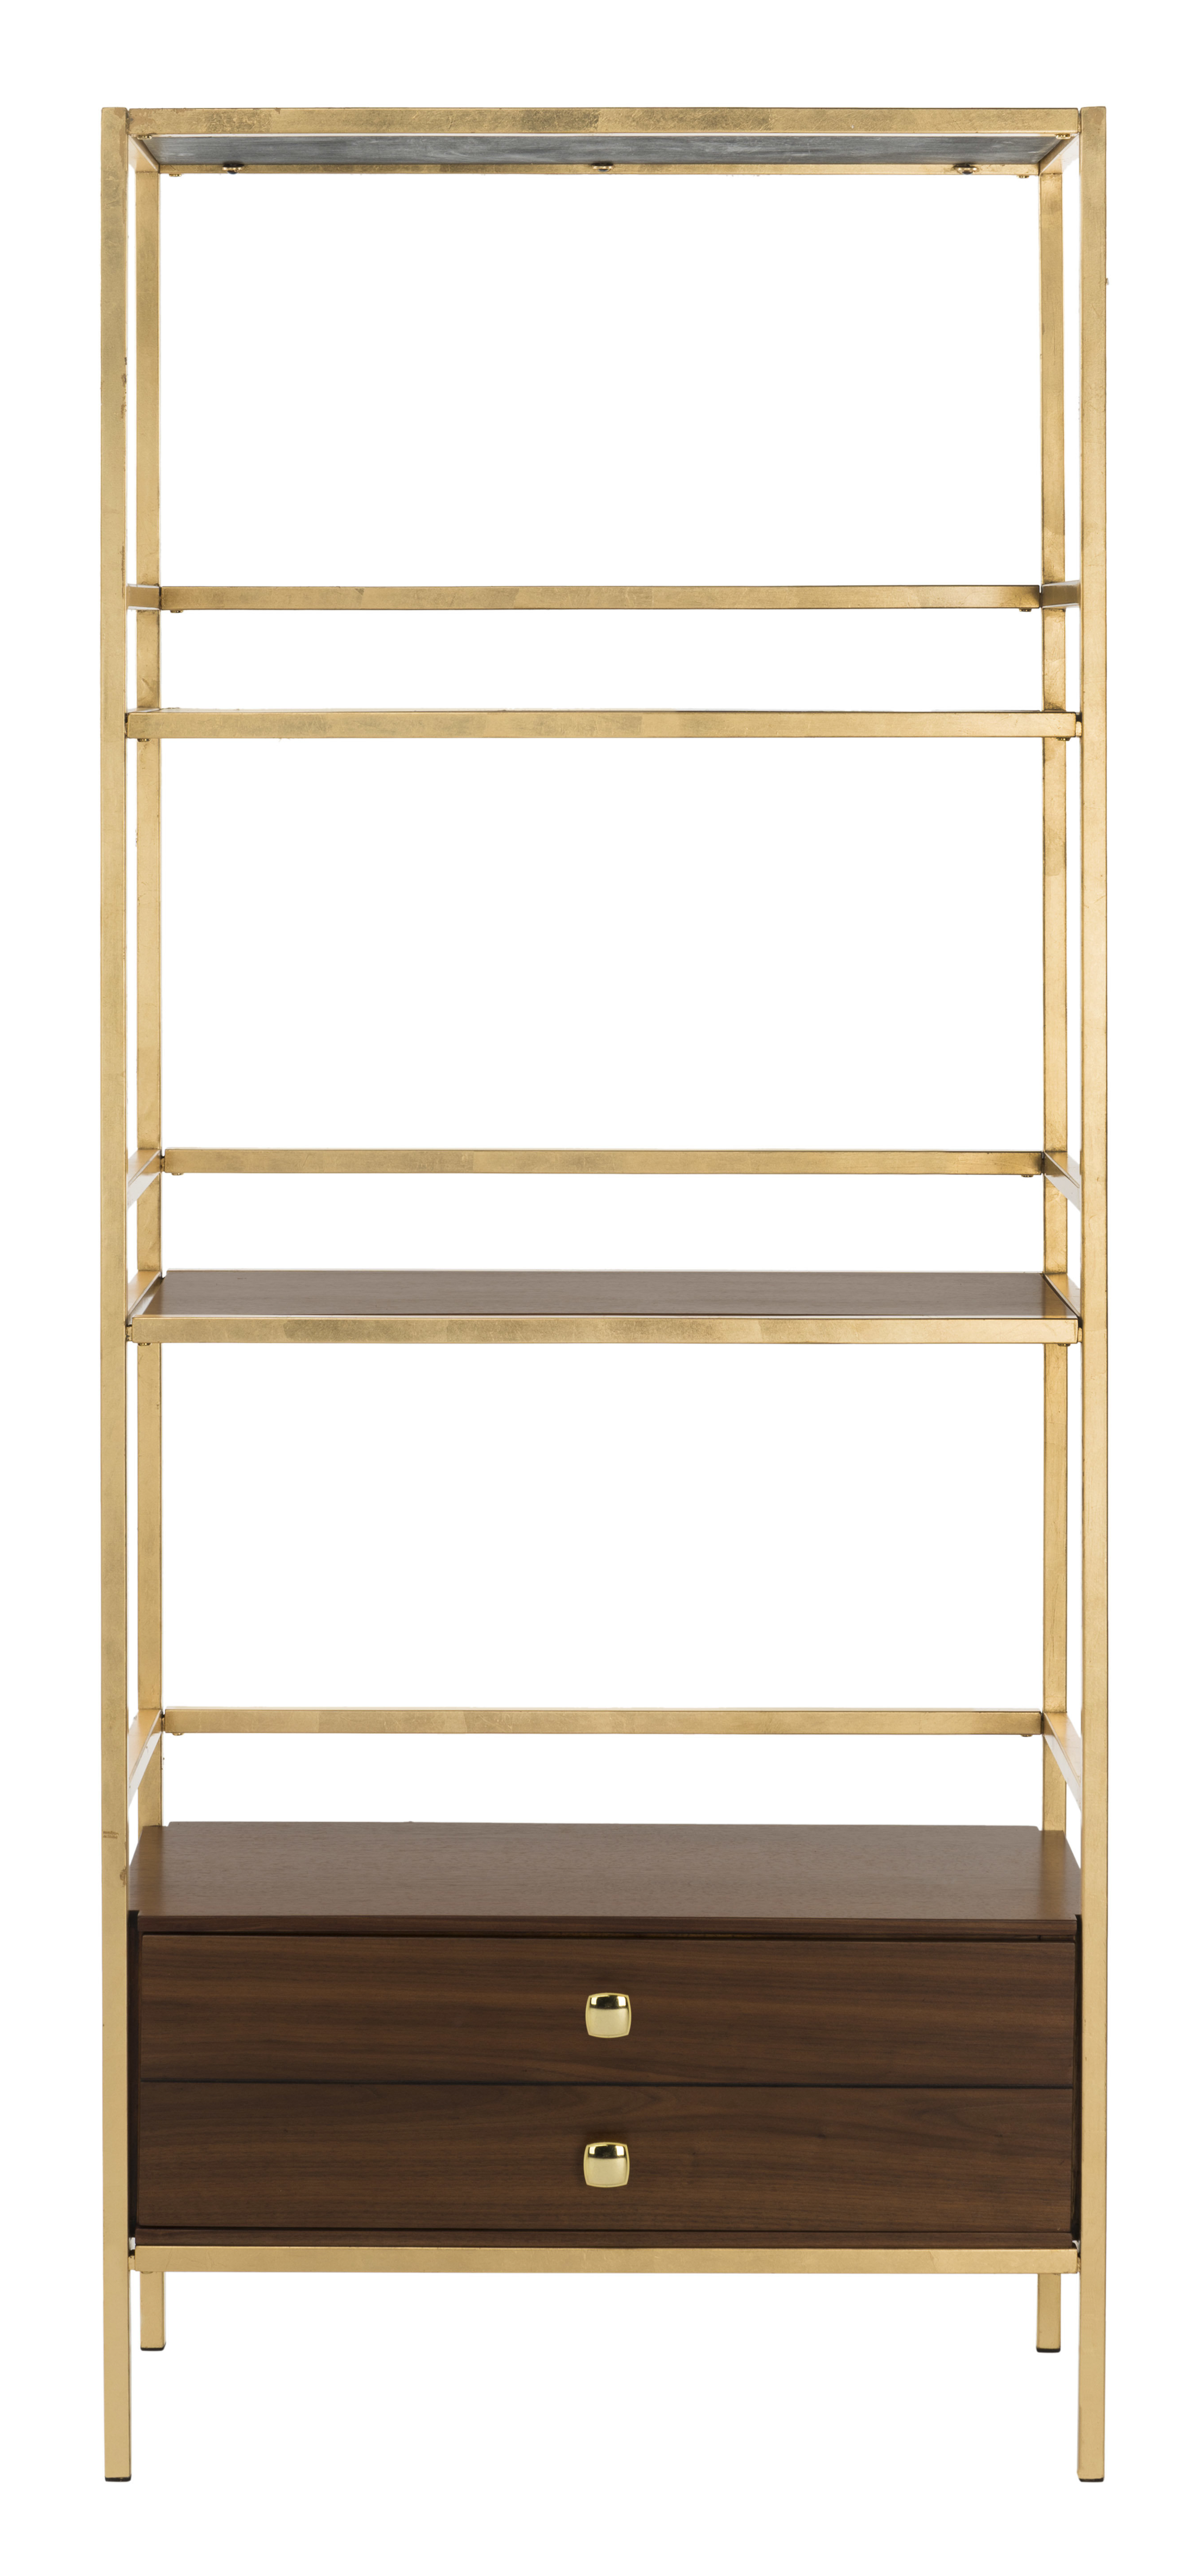 2019 Arrighetto 4 Tier Etagere Bookcase Intended For Rech 4 Tier Etagere Bookcases (View 1 of 20)